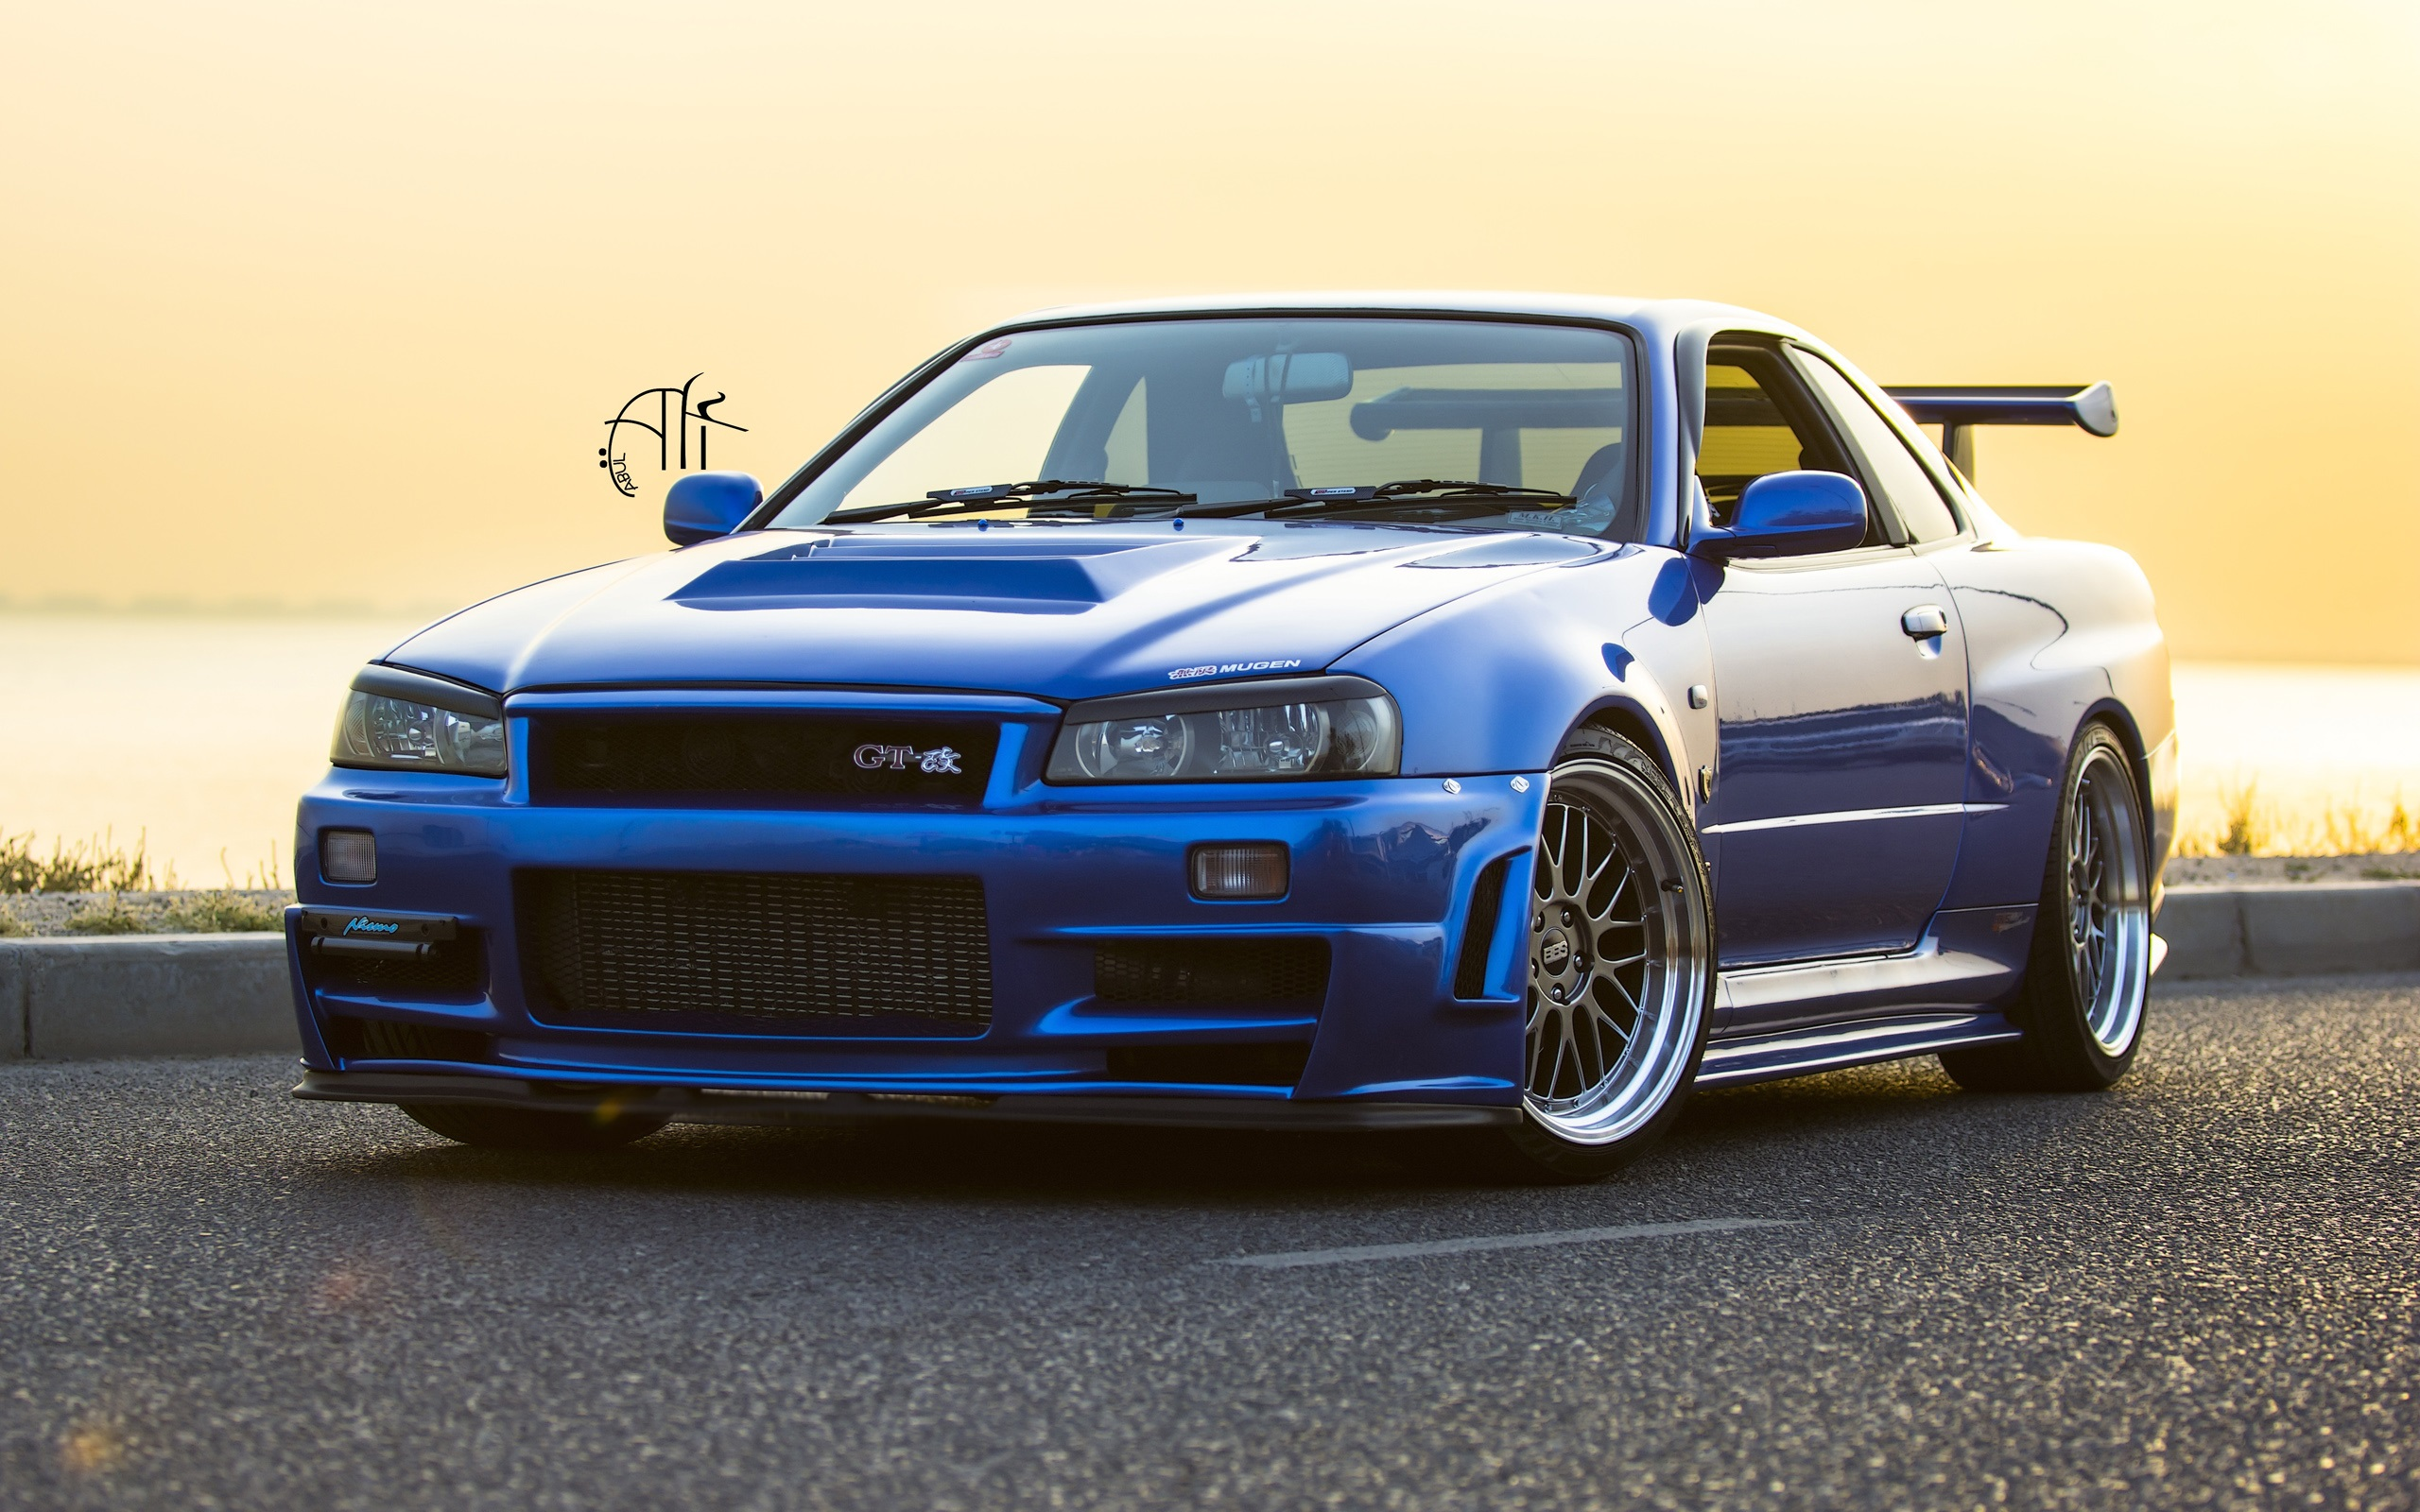 Nissan GTR R34 Wallpaper blue car HD Wallpapers Pictures 2560x1600